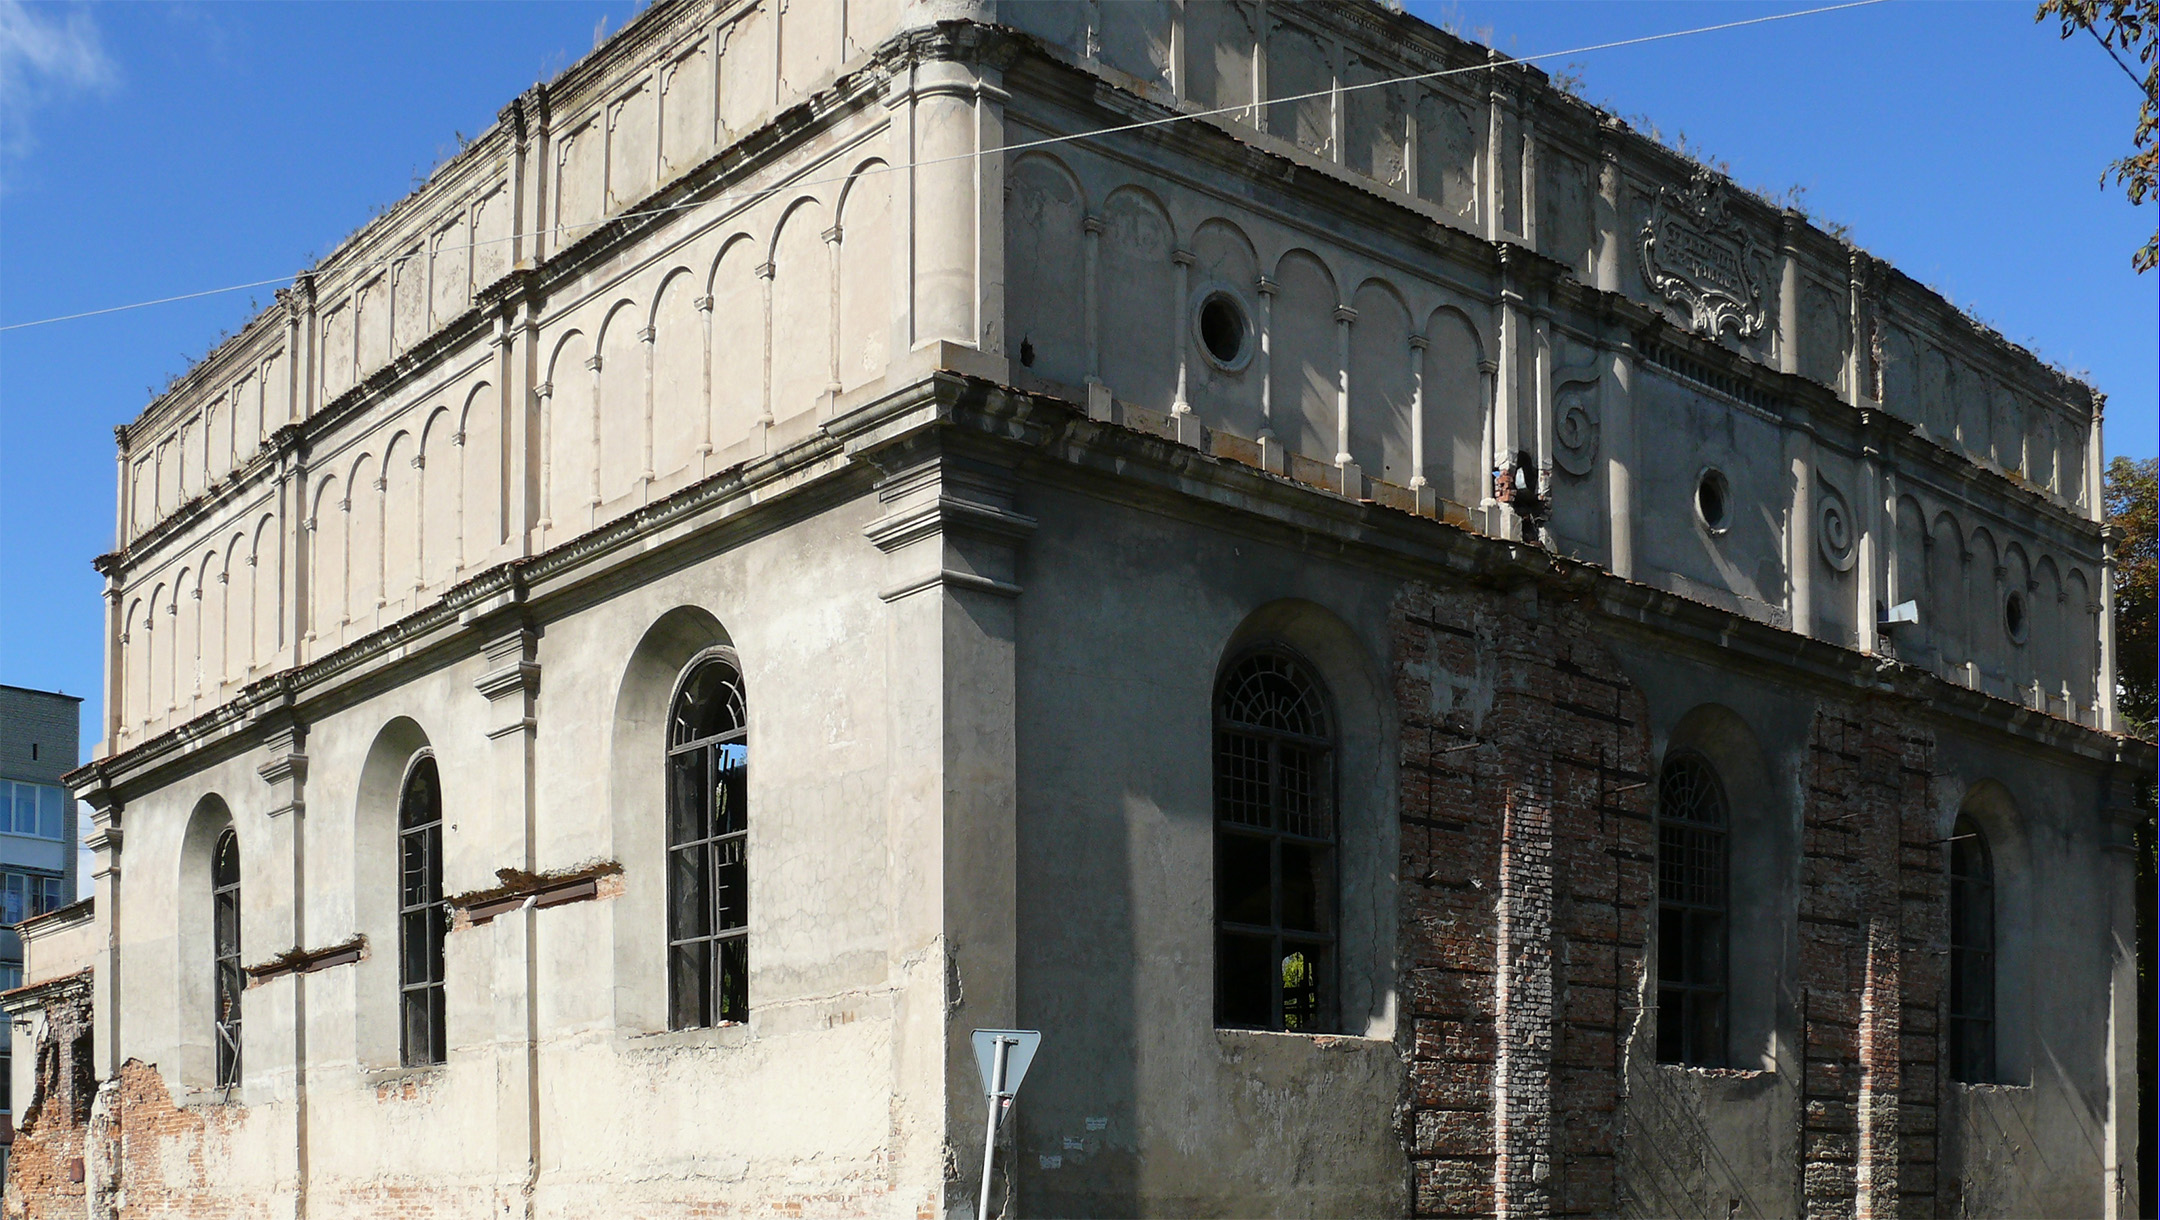 Roof collapses on dilapidated 18th-century former synagogue in Ukraine